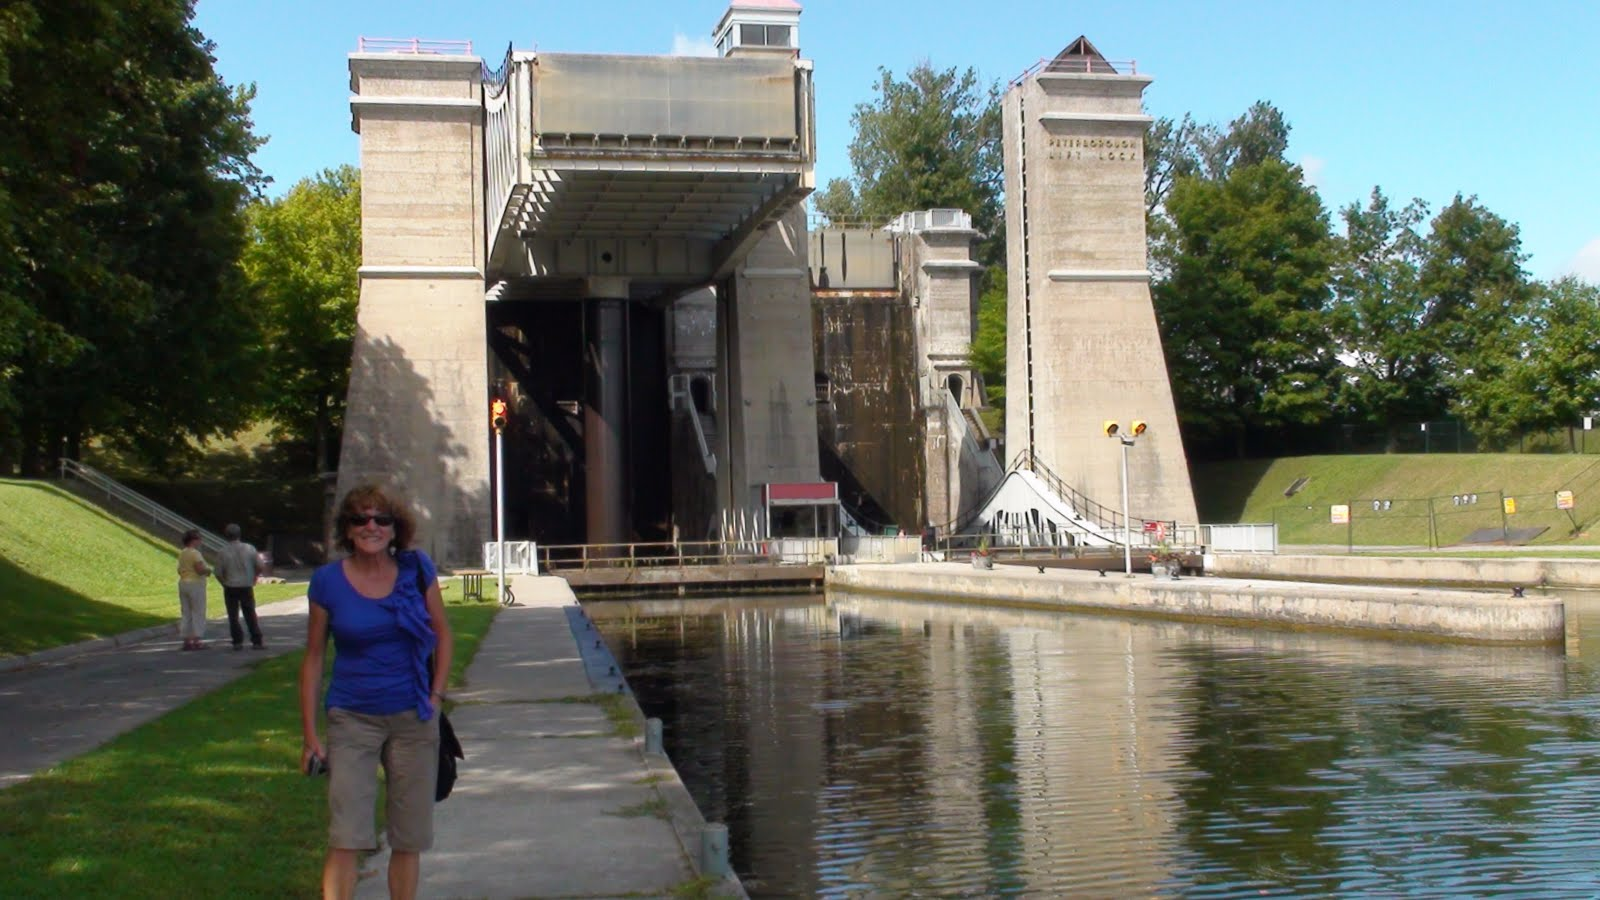 Liz in front of the Lock #21